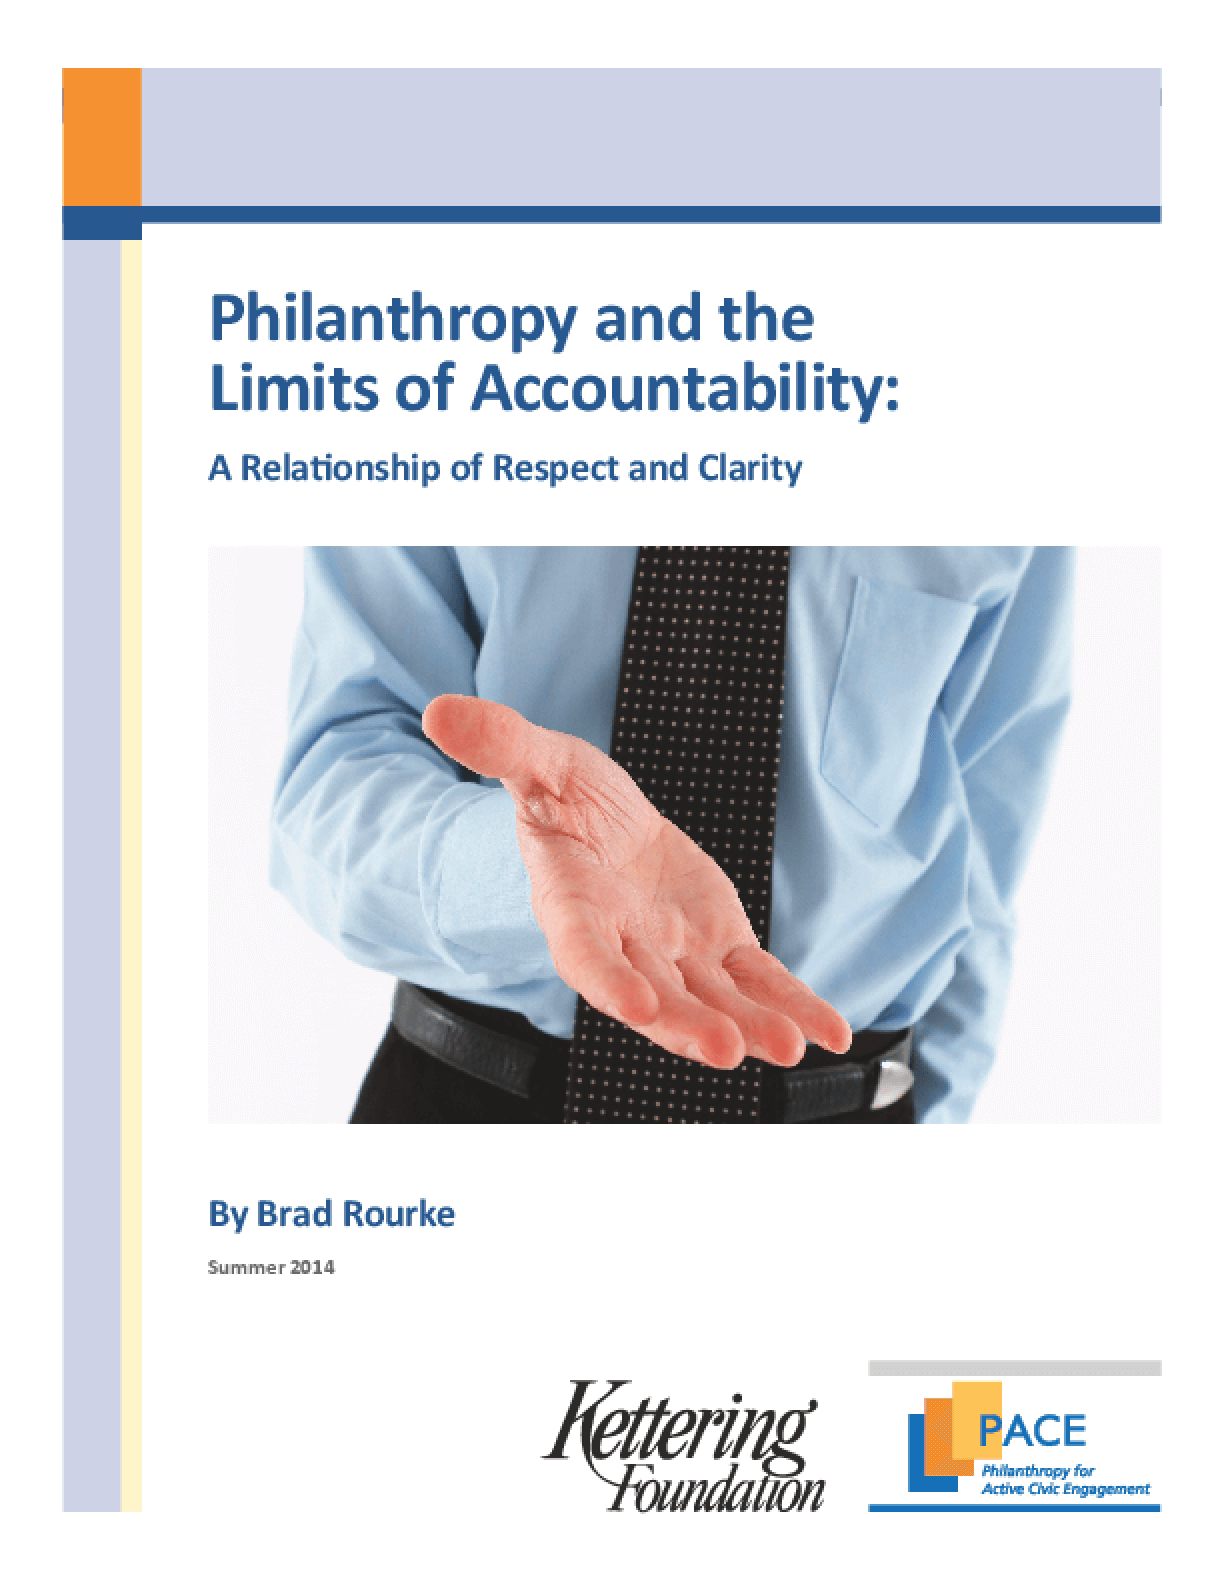 Philanthropy and the Limits of Accountability: A Relationship of Respect and Clarity